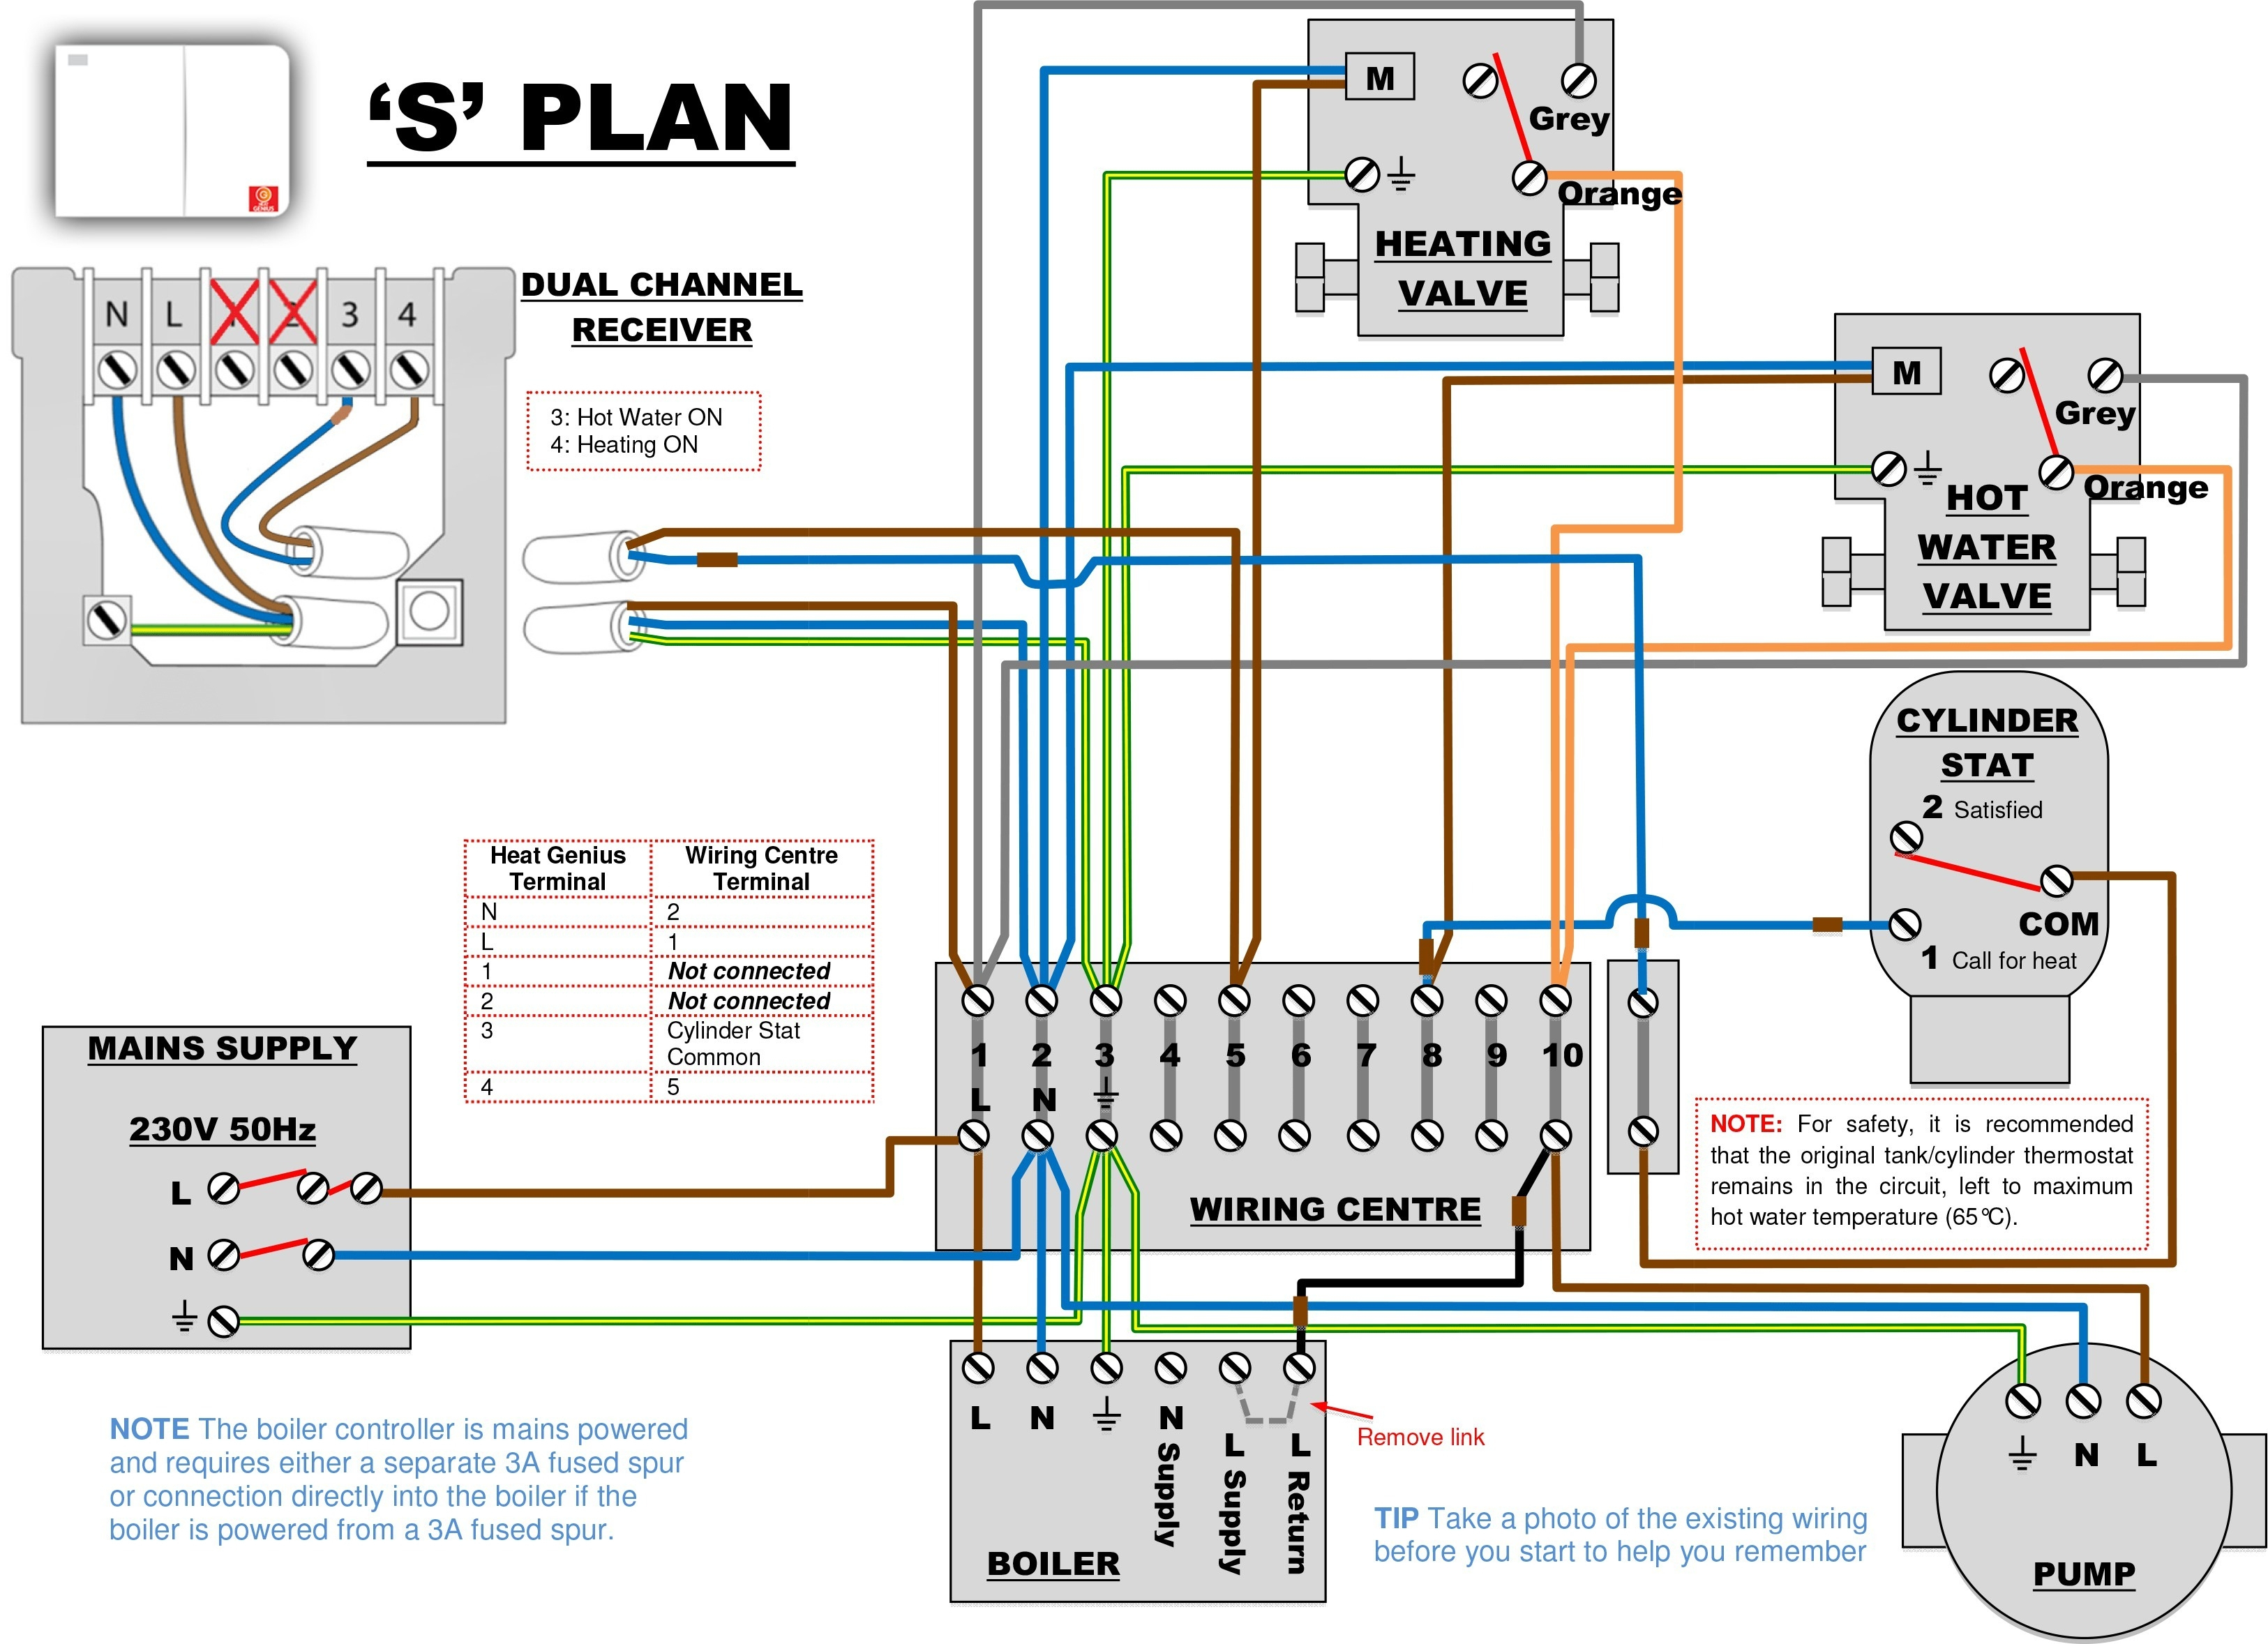 Nest Thermostat Wiring Diagram For Carrier Infinity - Wiring - Nest Thermostat Wiring Diagram Symbols